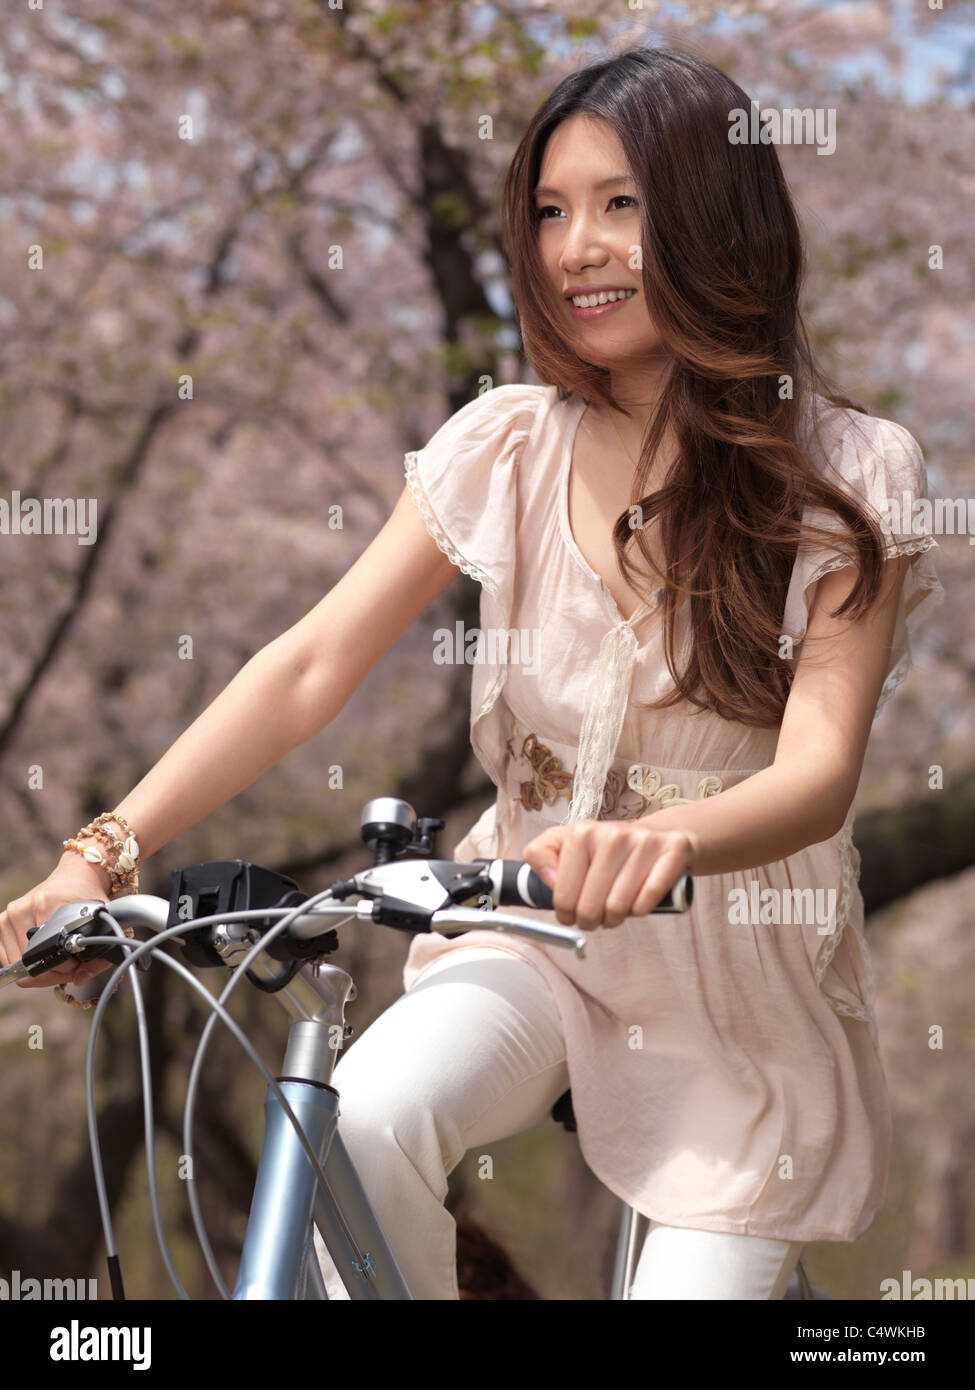 Young smiling Asian woman riding a bicycle in a park past blooming cherry trees Stock Photo